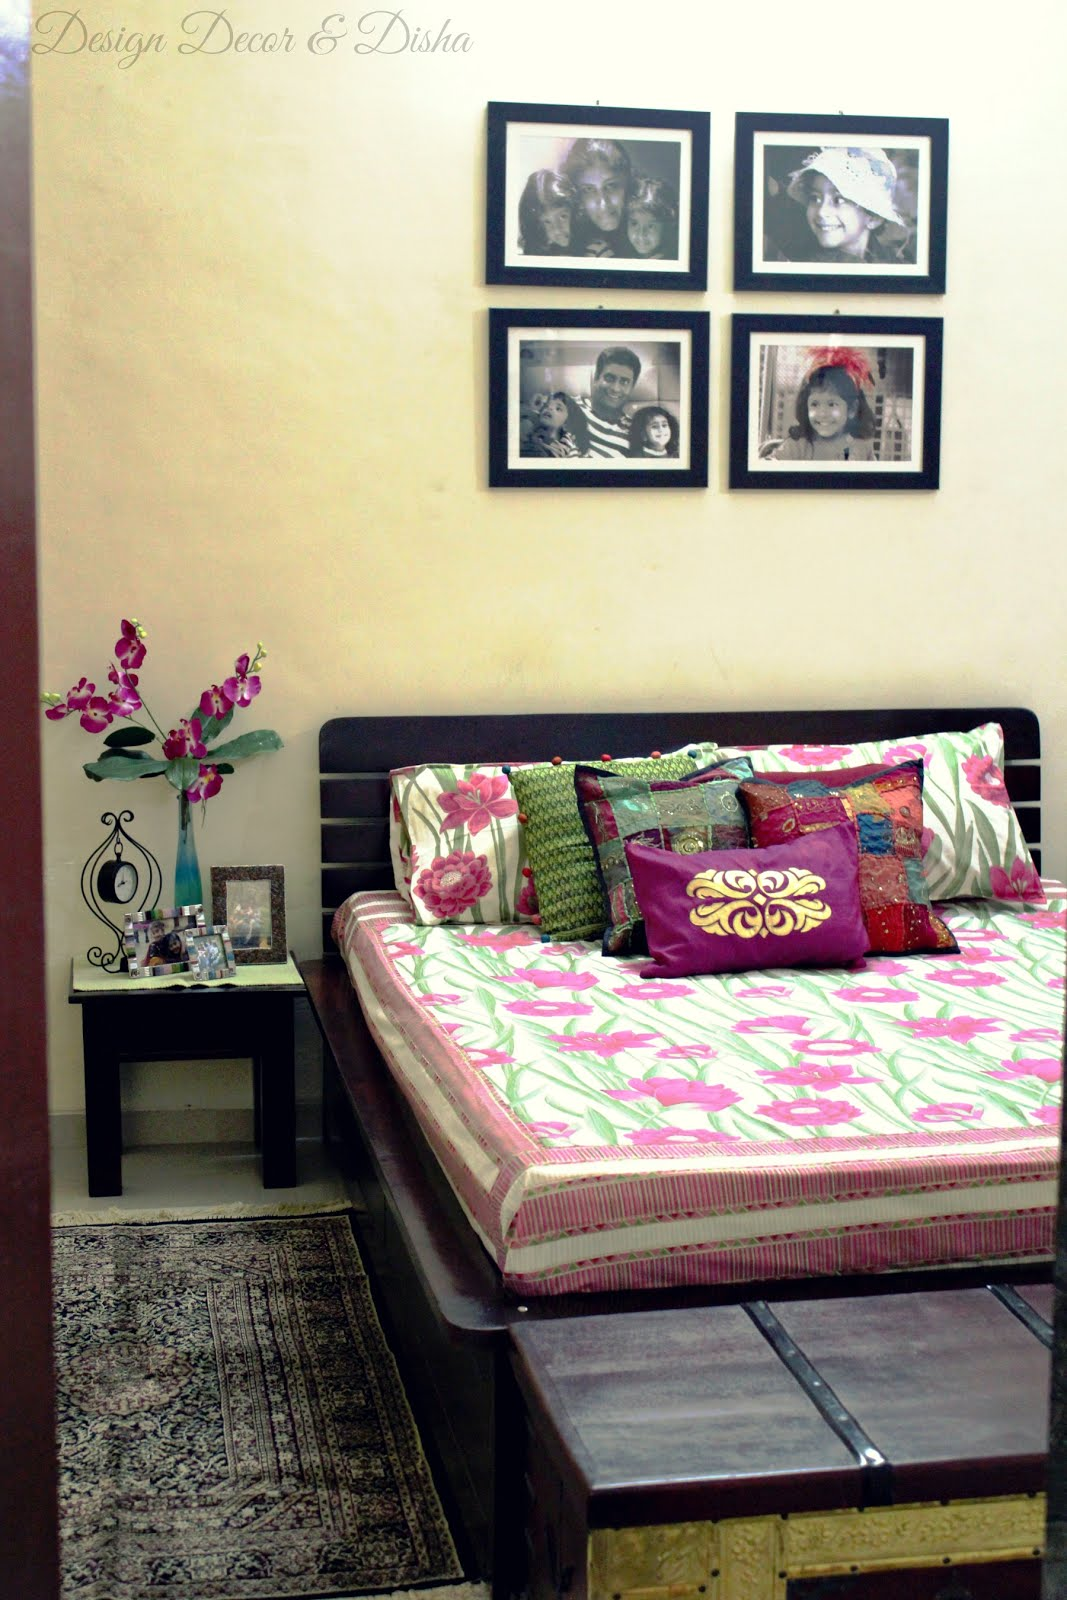 Design decor disha an indian design decor blog home for Pictures of bed rooms